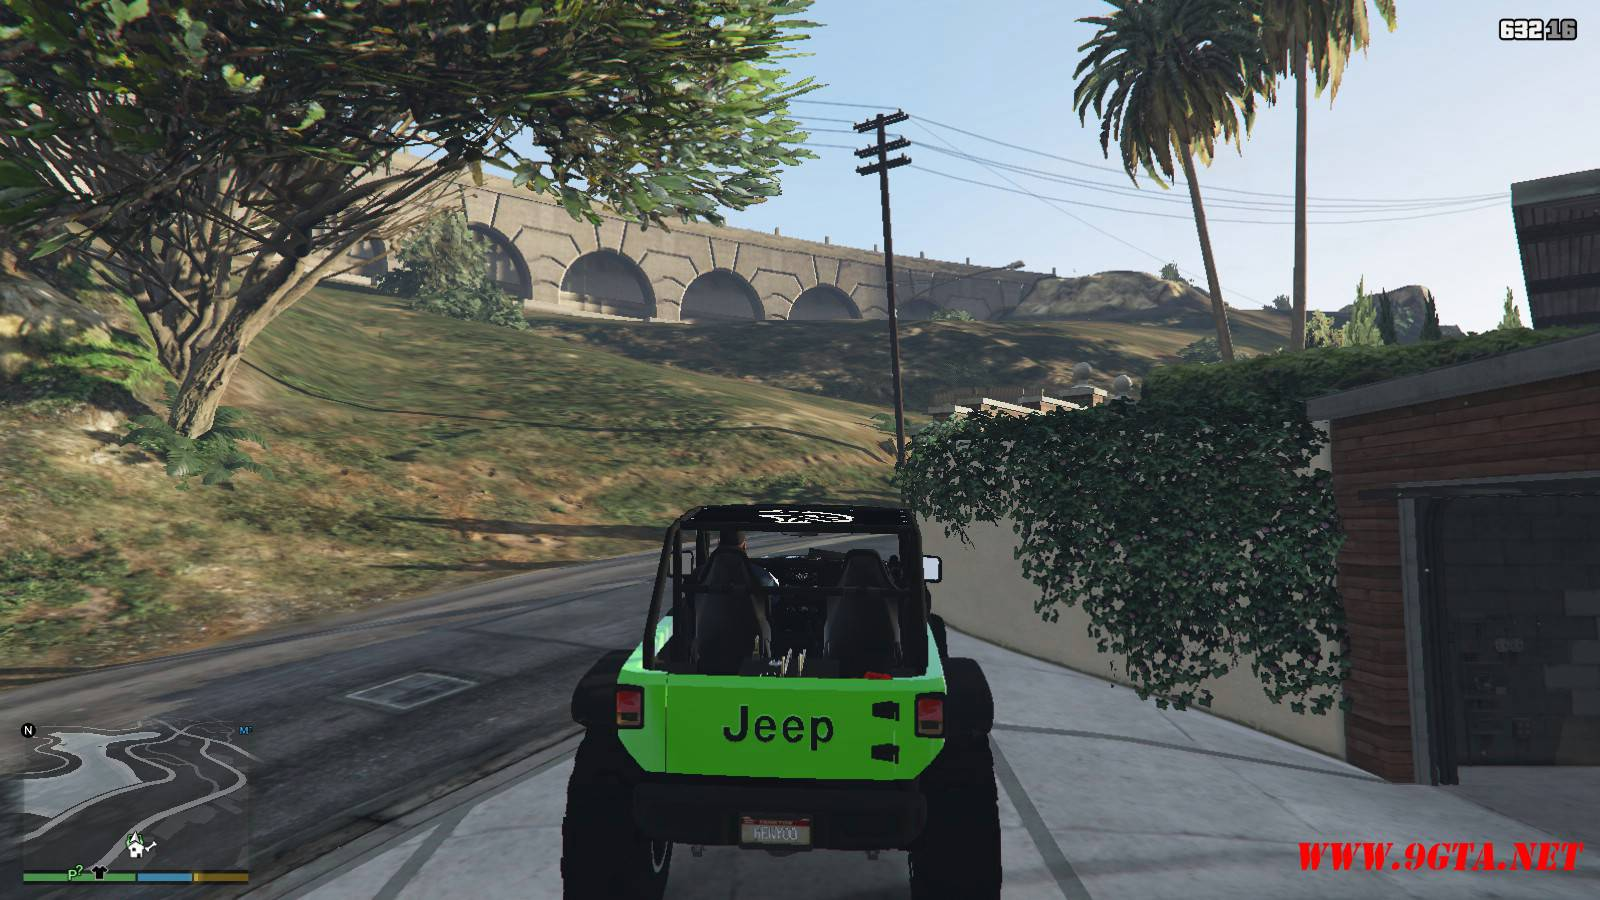 Jeep Trailcat Concept v2 Mod For GTA5 (8)